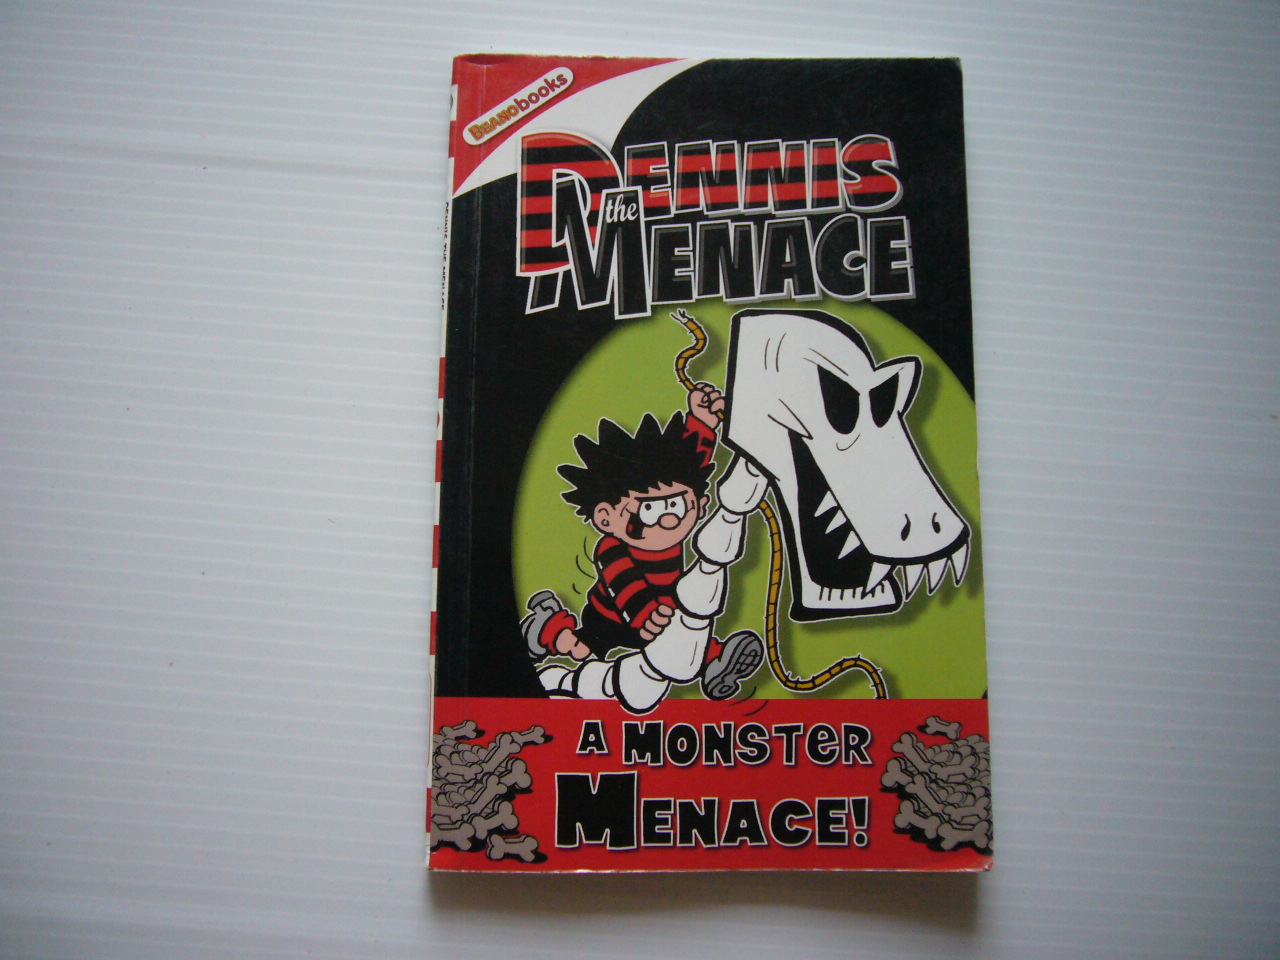 Dennis the Menace: A Monster Menace!